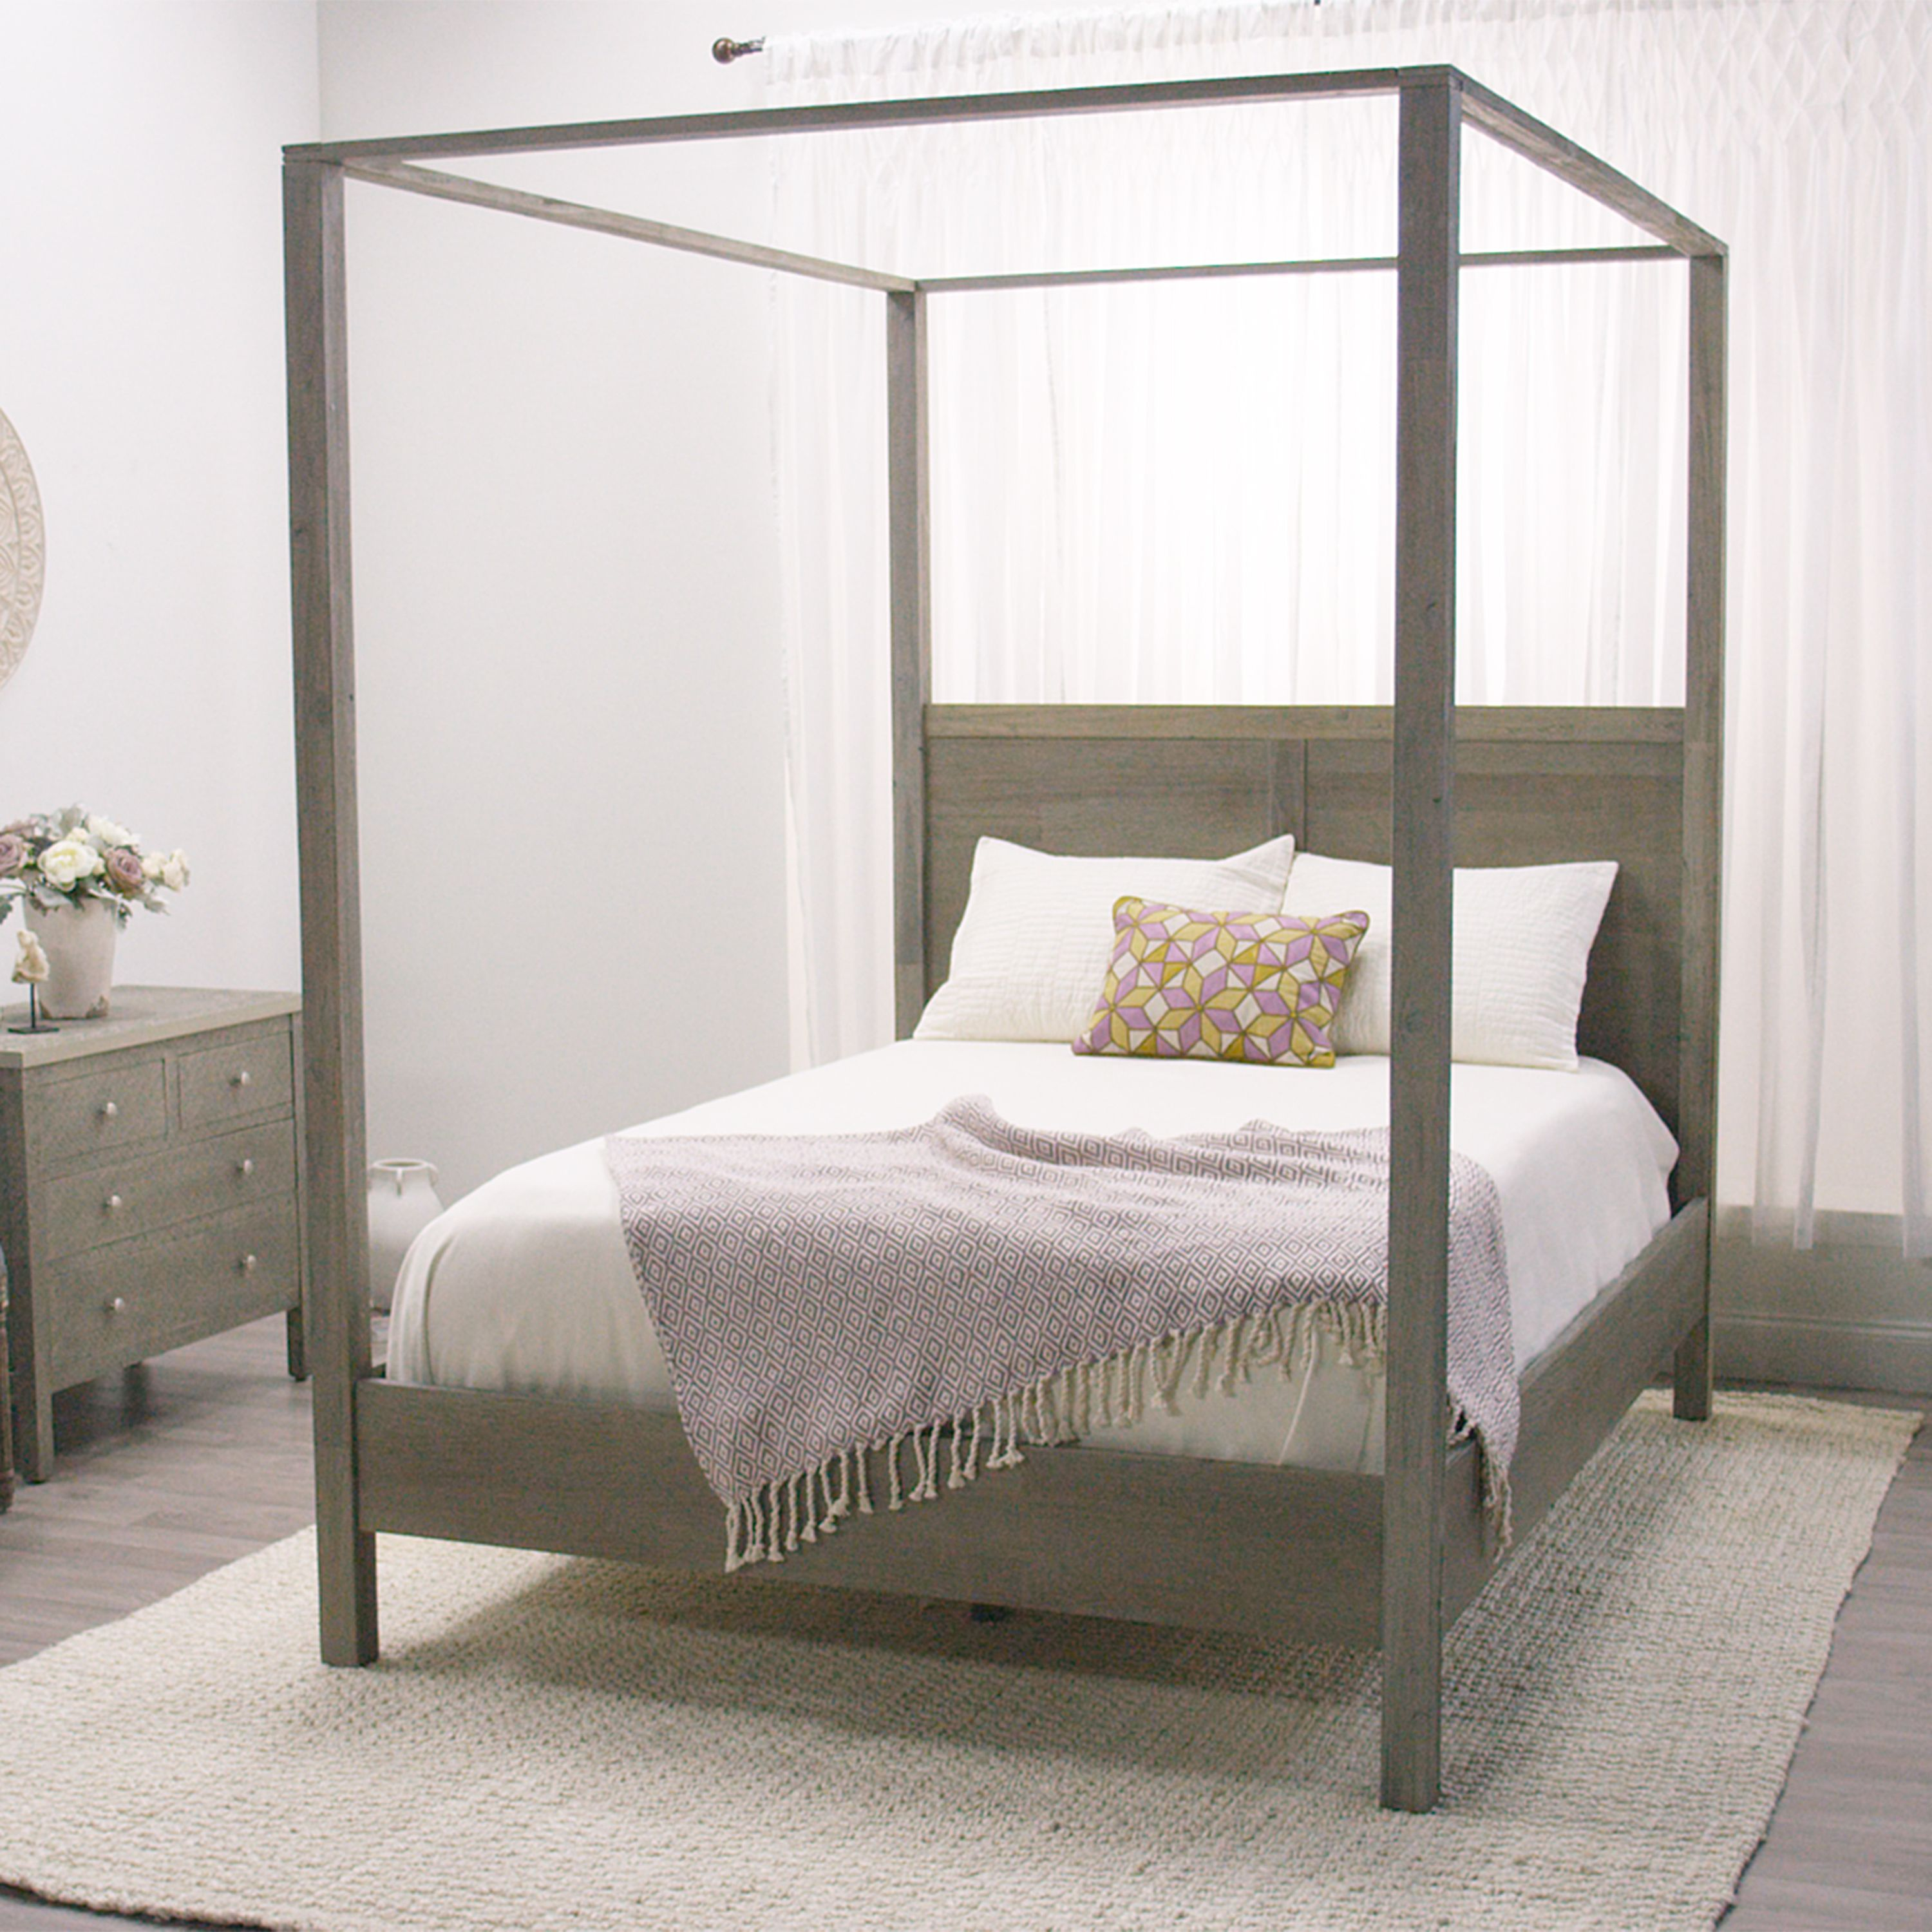 Gray Marlon Queen Canopy Bed Rustic Elegance Canopy And